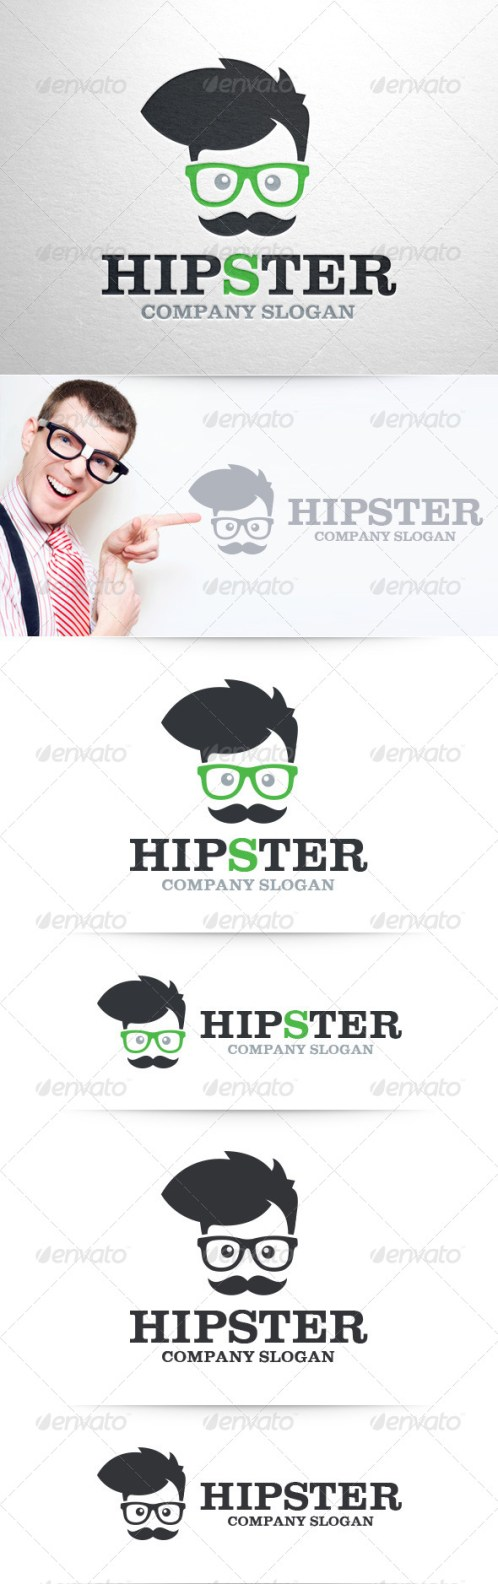 Logotipos Hipsters.